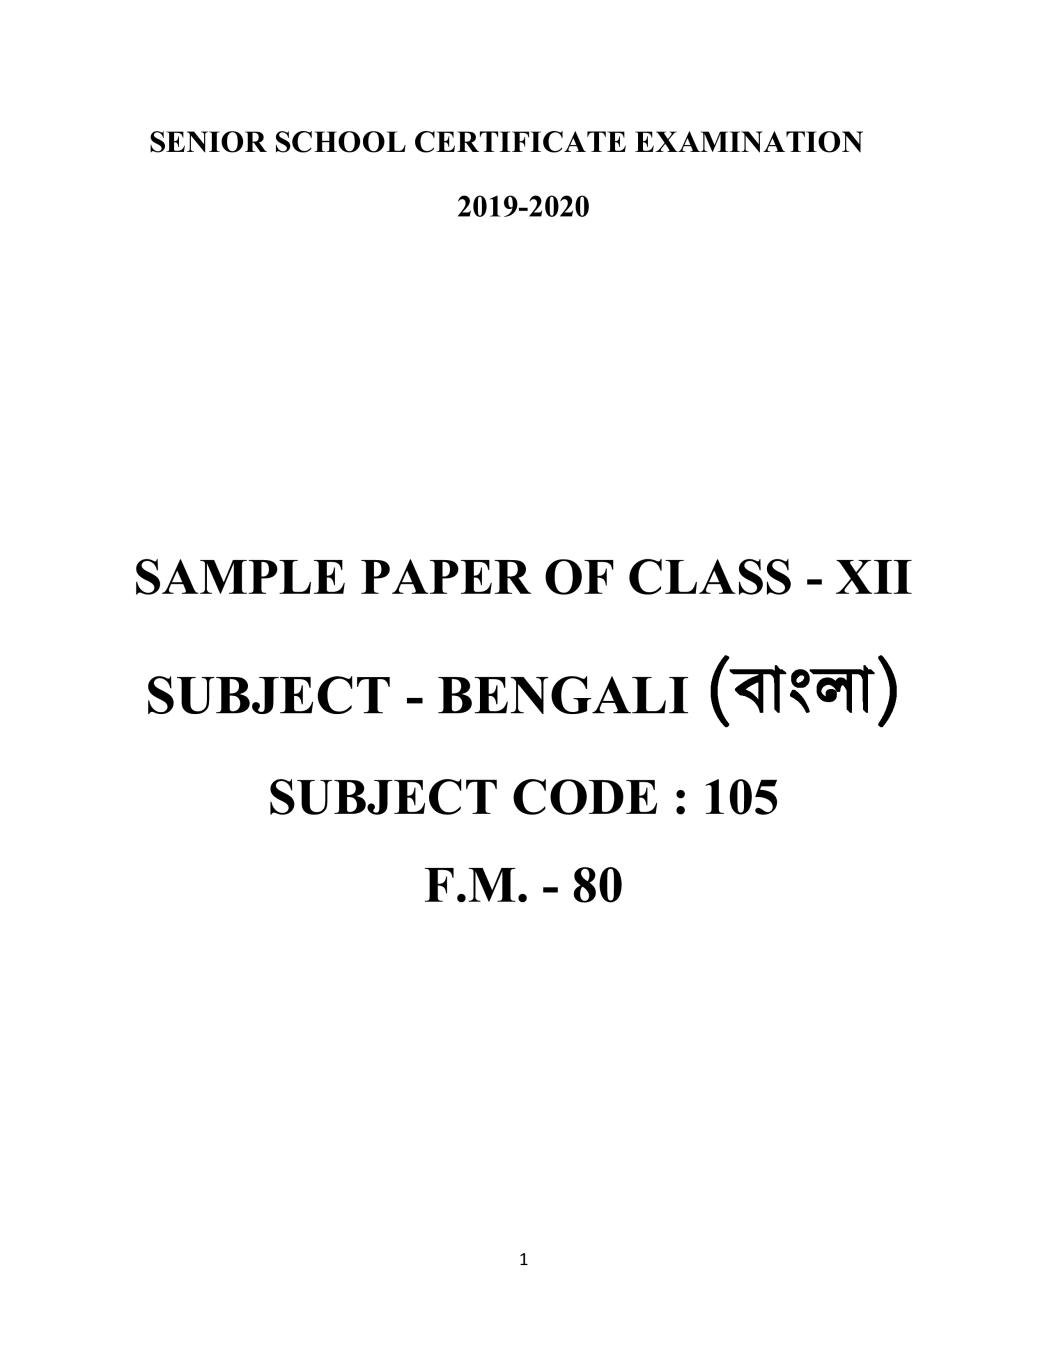 CBSE Sample Papers 2020 for Class 12 – Information Practices